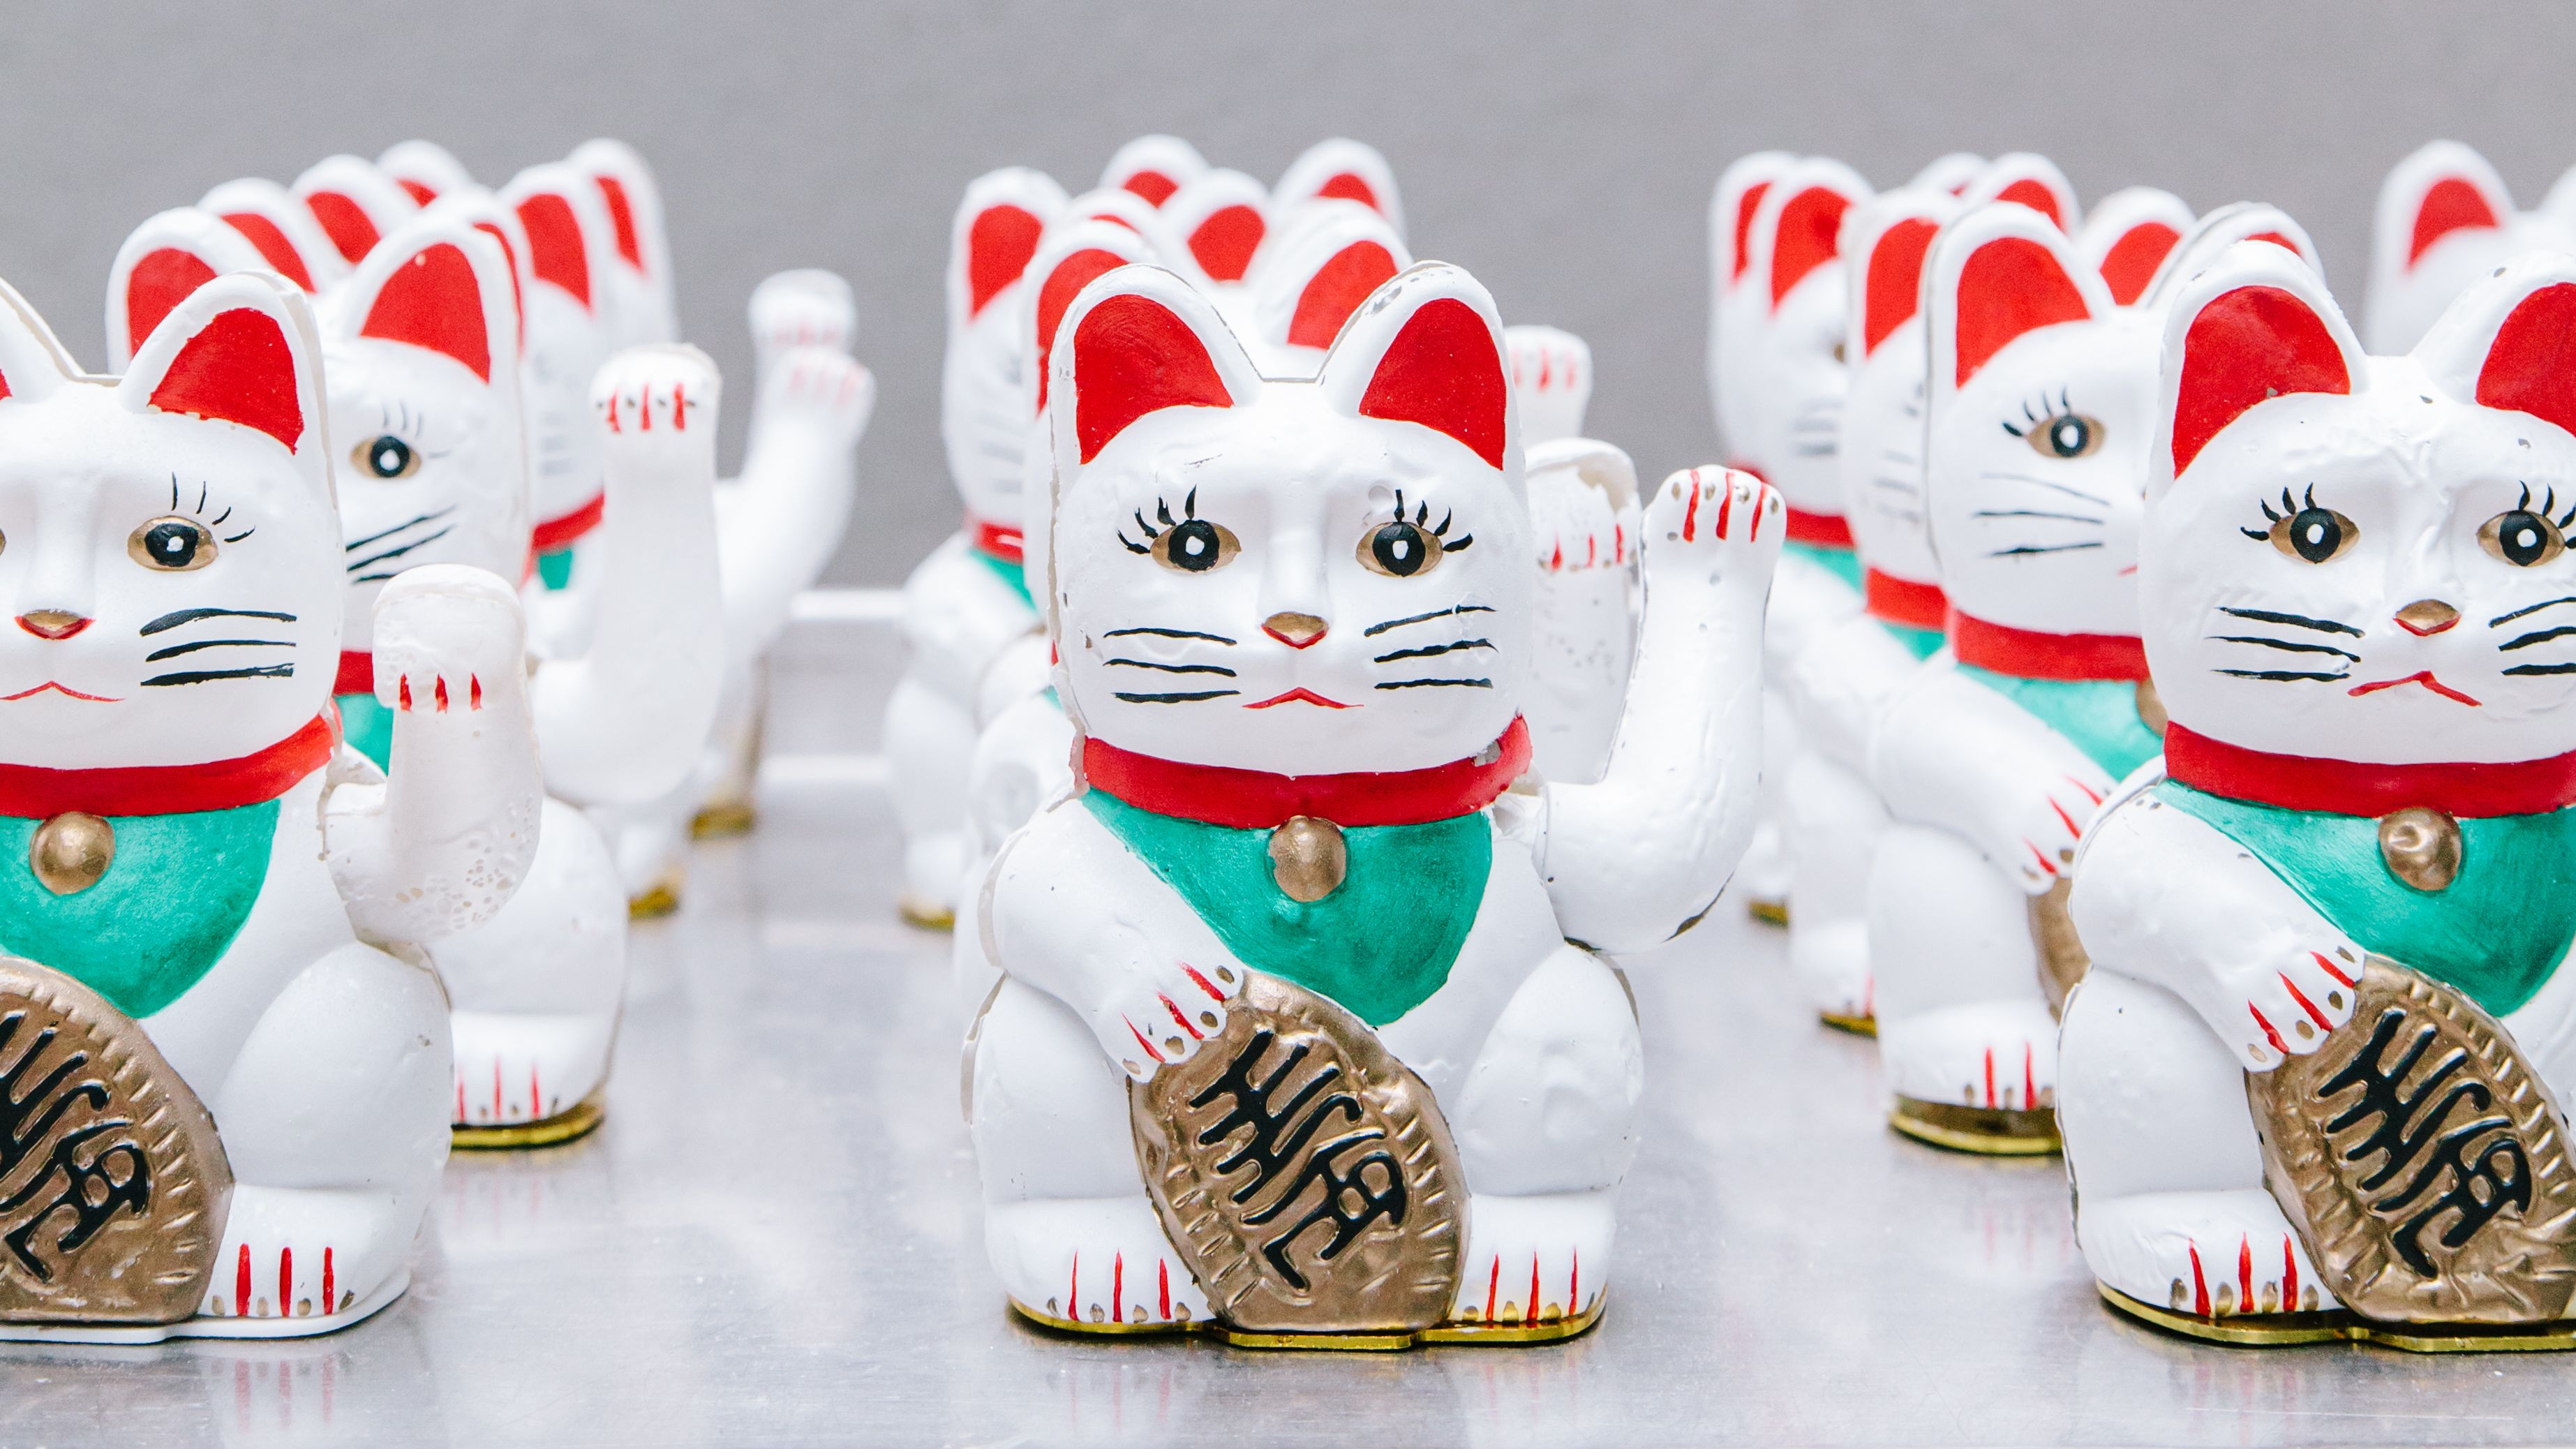 Multiple rows of Maneki-neko